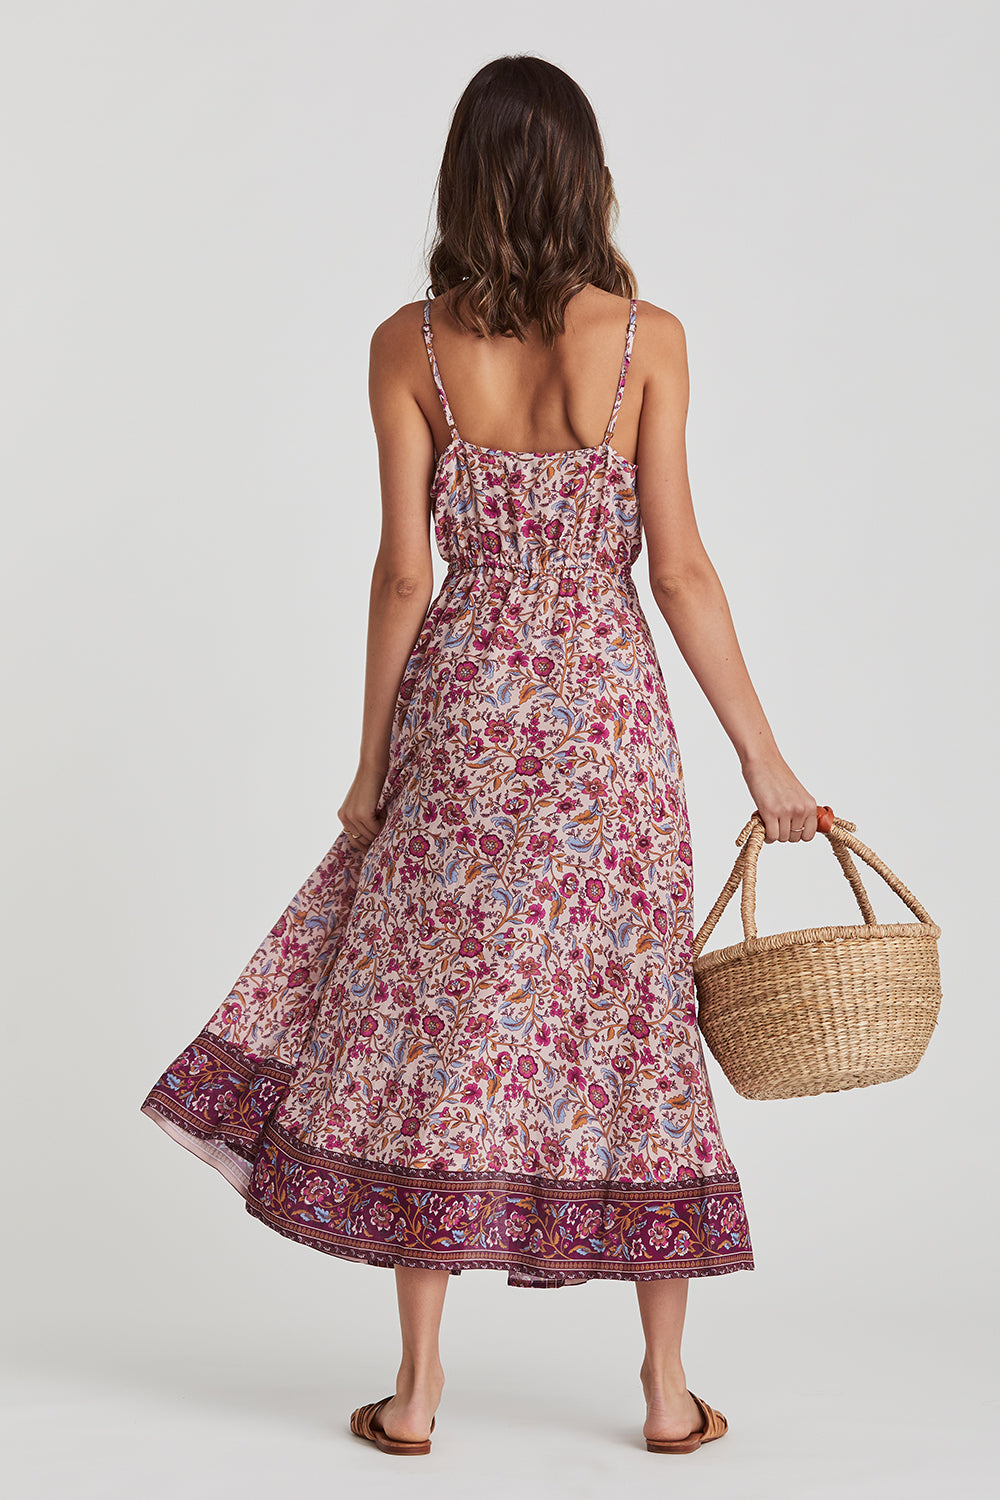 Daisy Chain Sundress in Candy